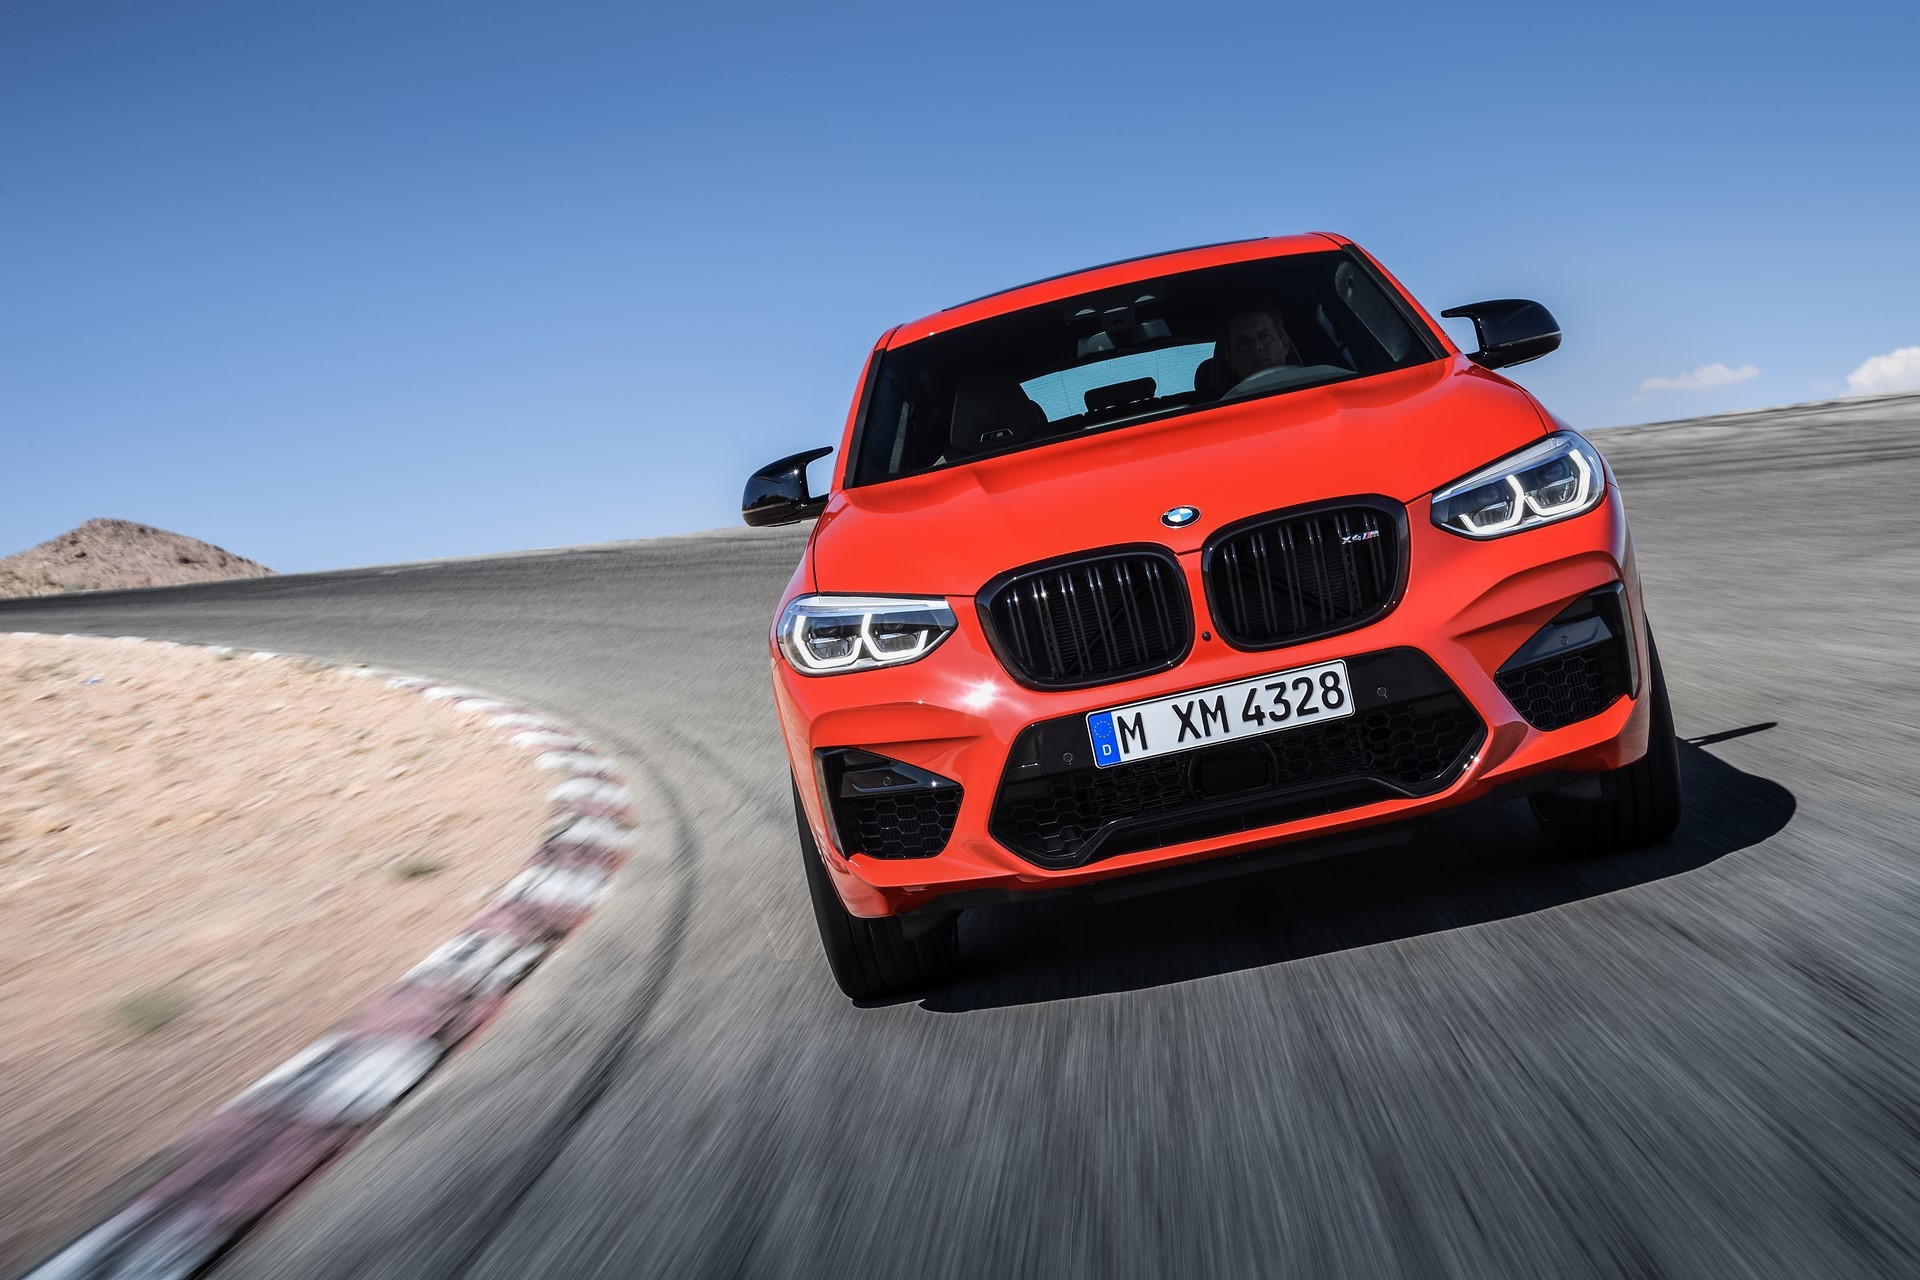 BMW X3 M and X4 M 2019 (59)